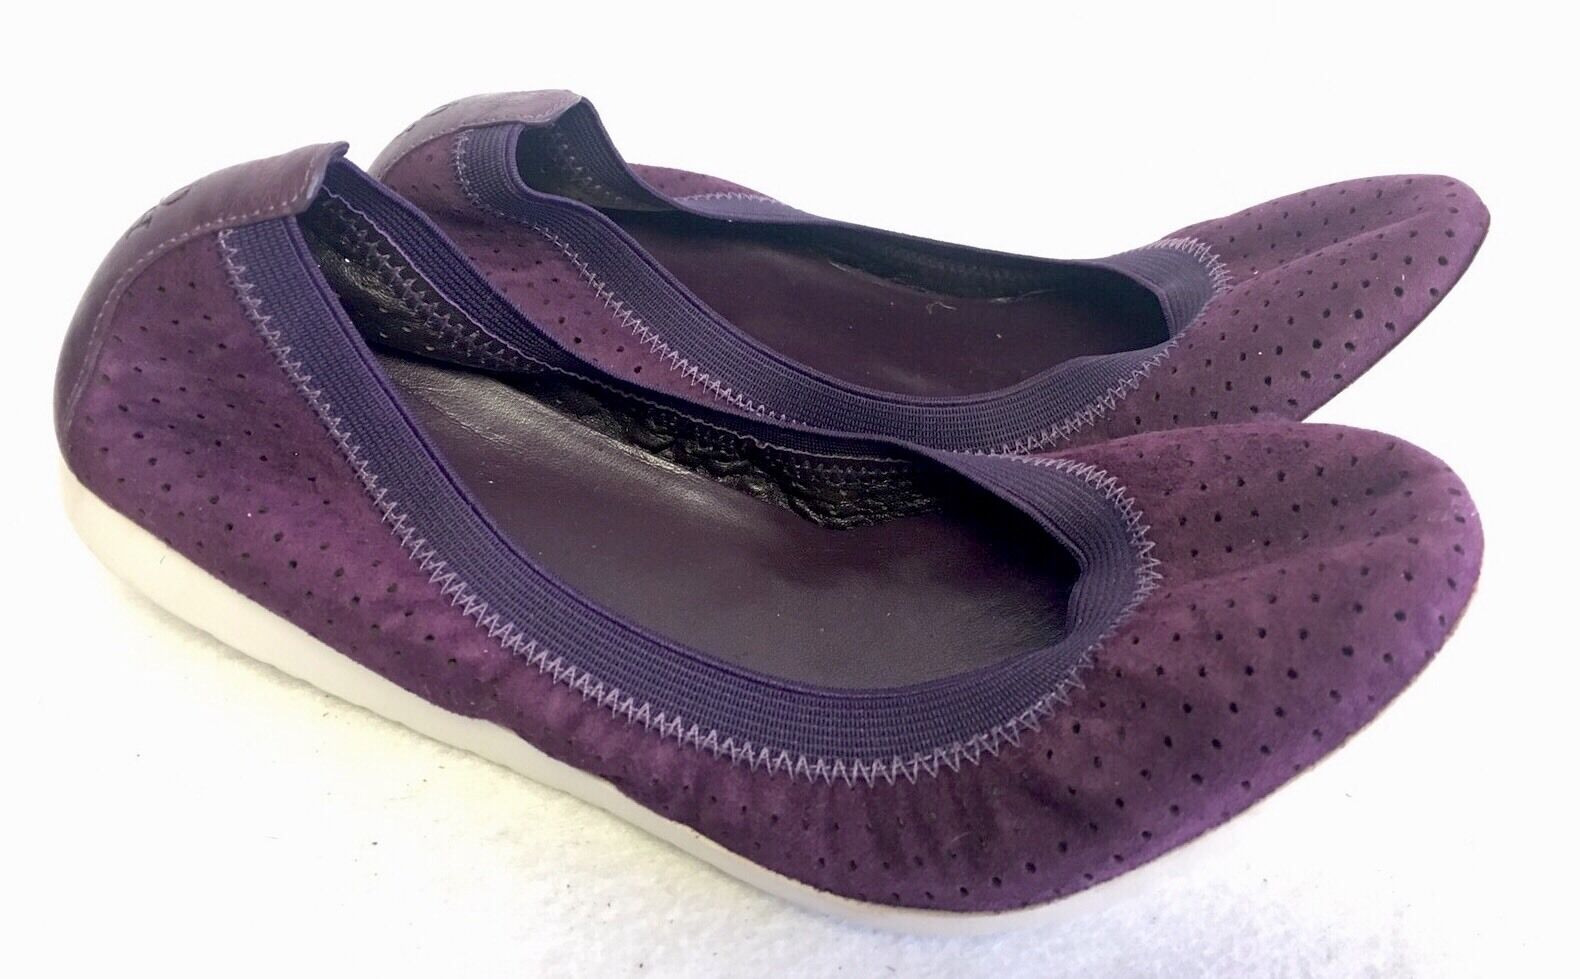 Cole Haan Gilmore Wedge Nightshade Purple Perf suede Leather Ballet Flats 6 B